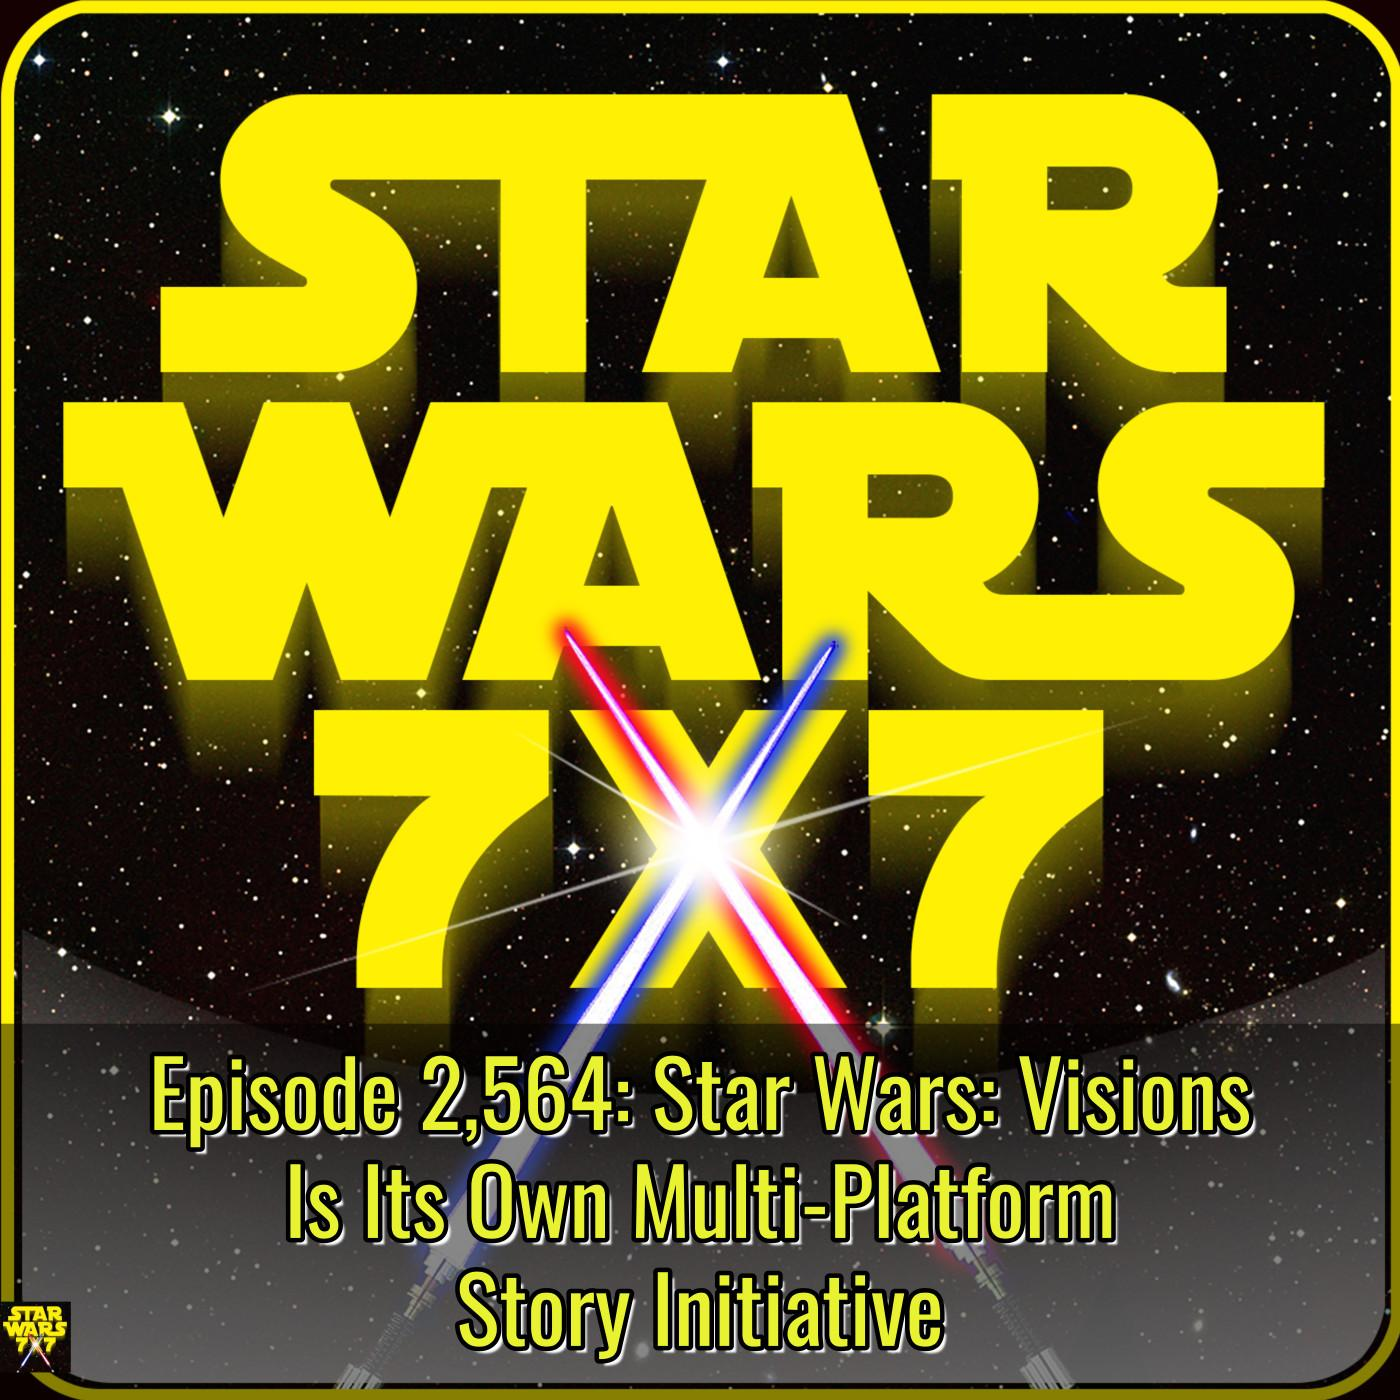 2,564. Star Wars: Visions Is Its Own Multi-Platform Story Initiative